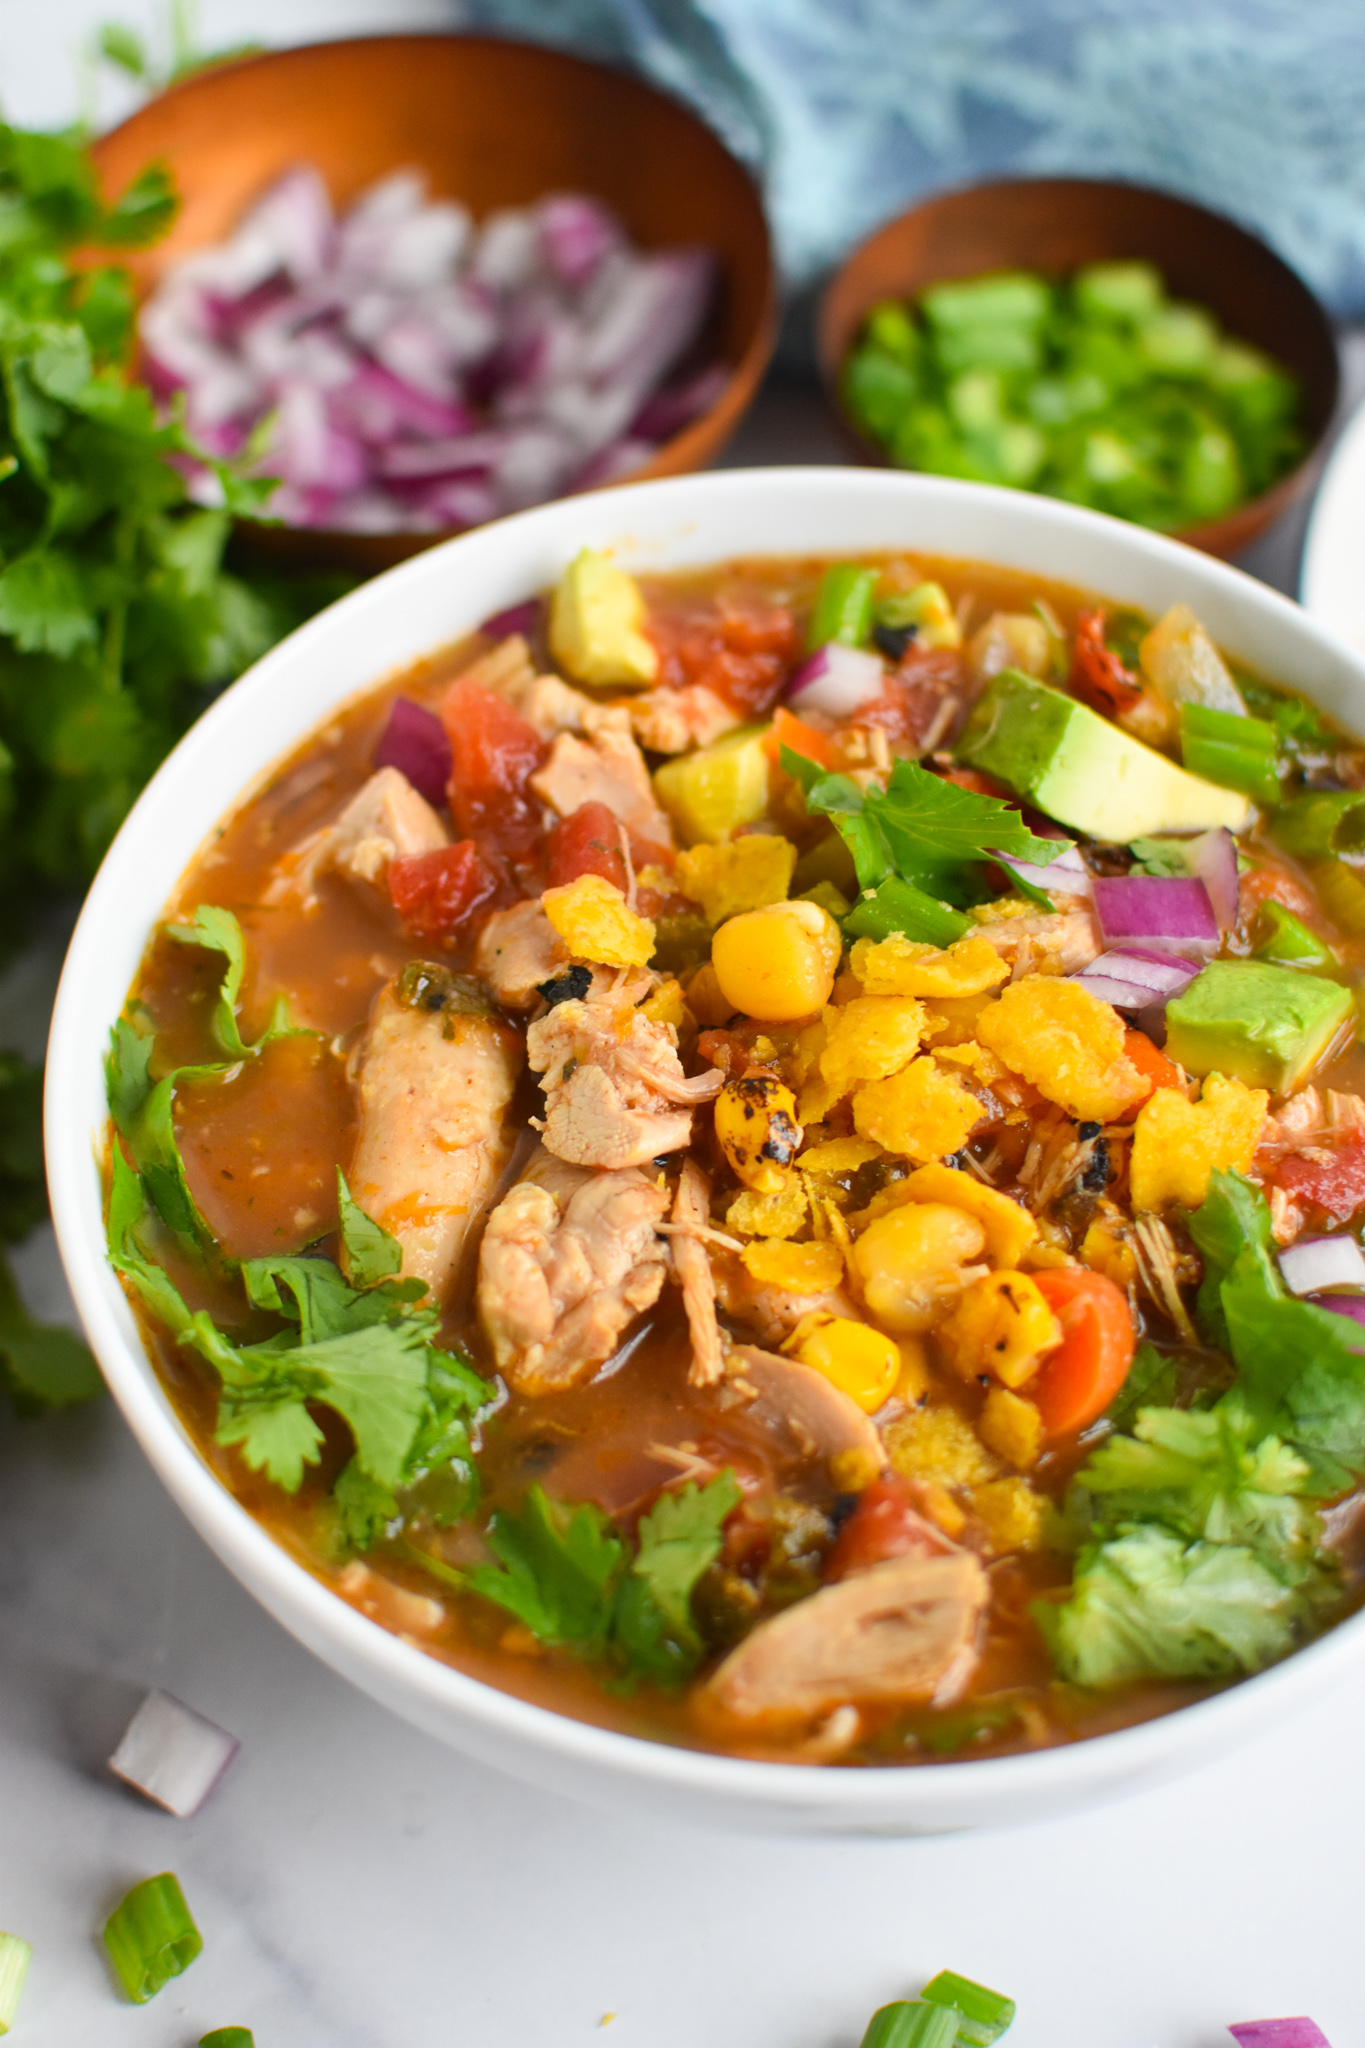 Green Chili Chicken Soup with green onion